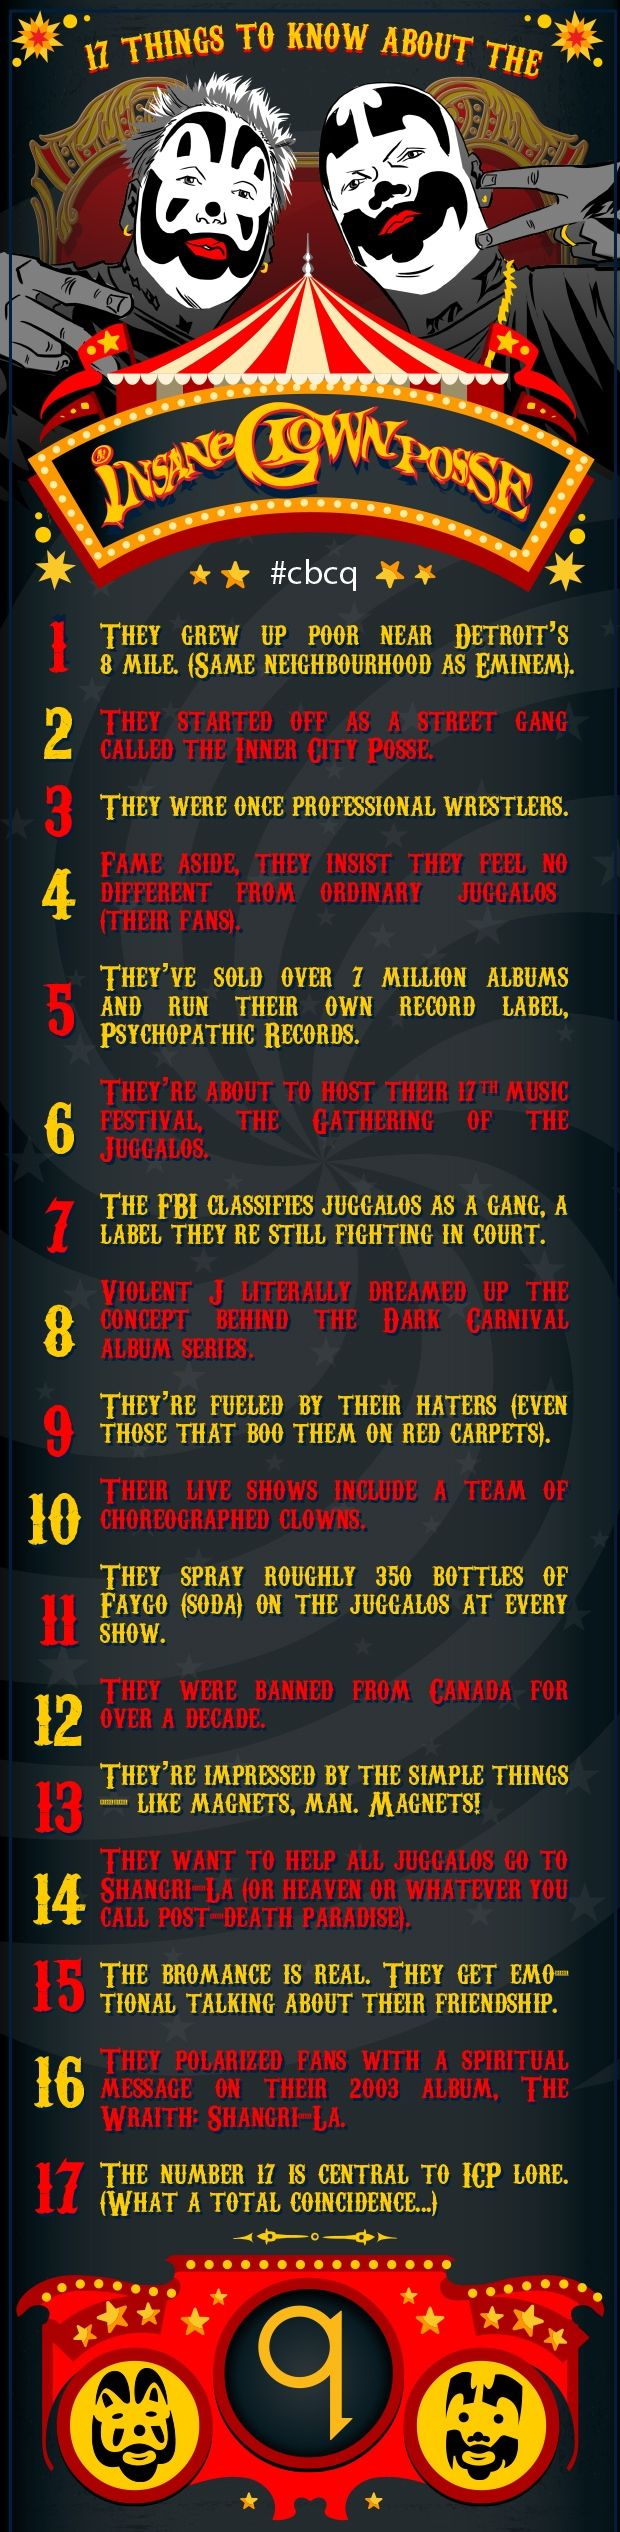 17 things to know about Insane Clown Posse